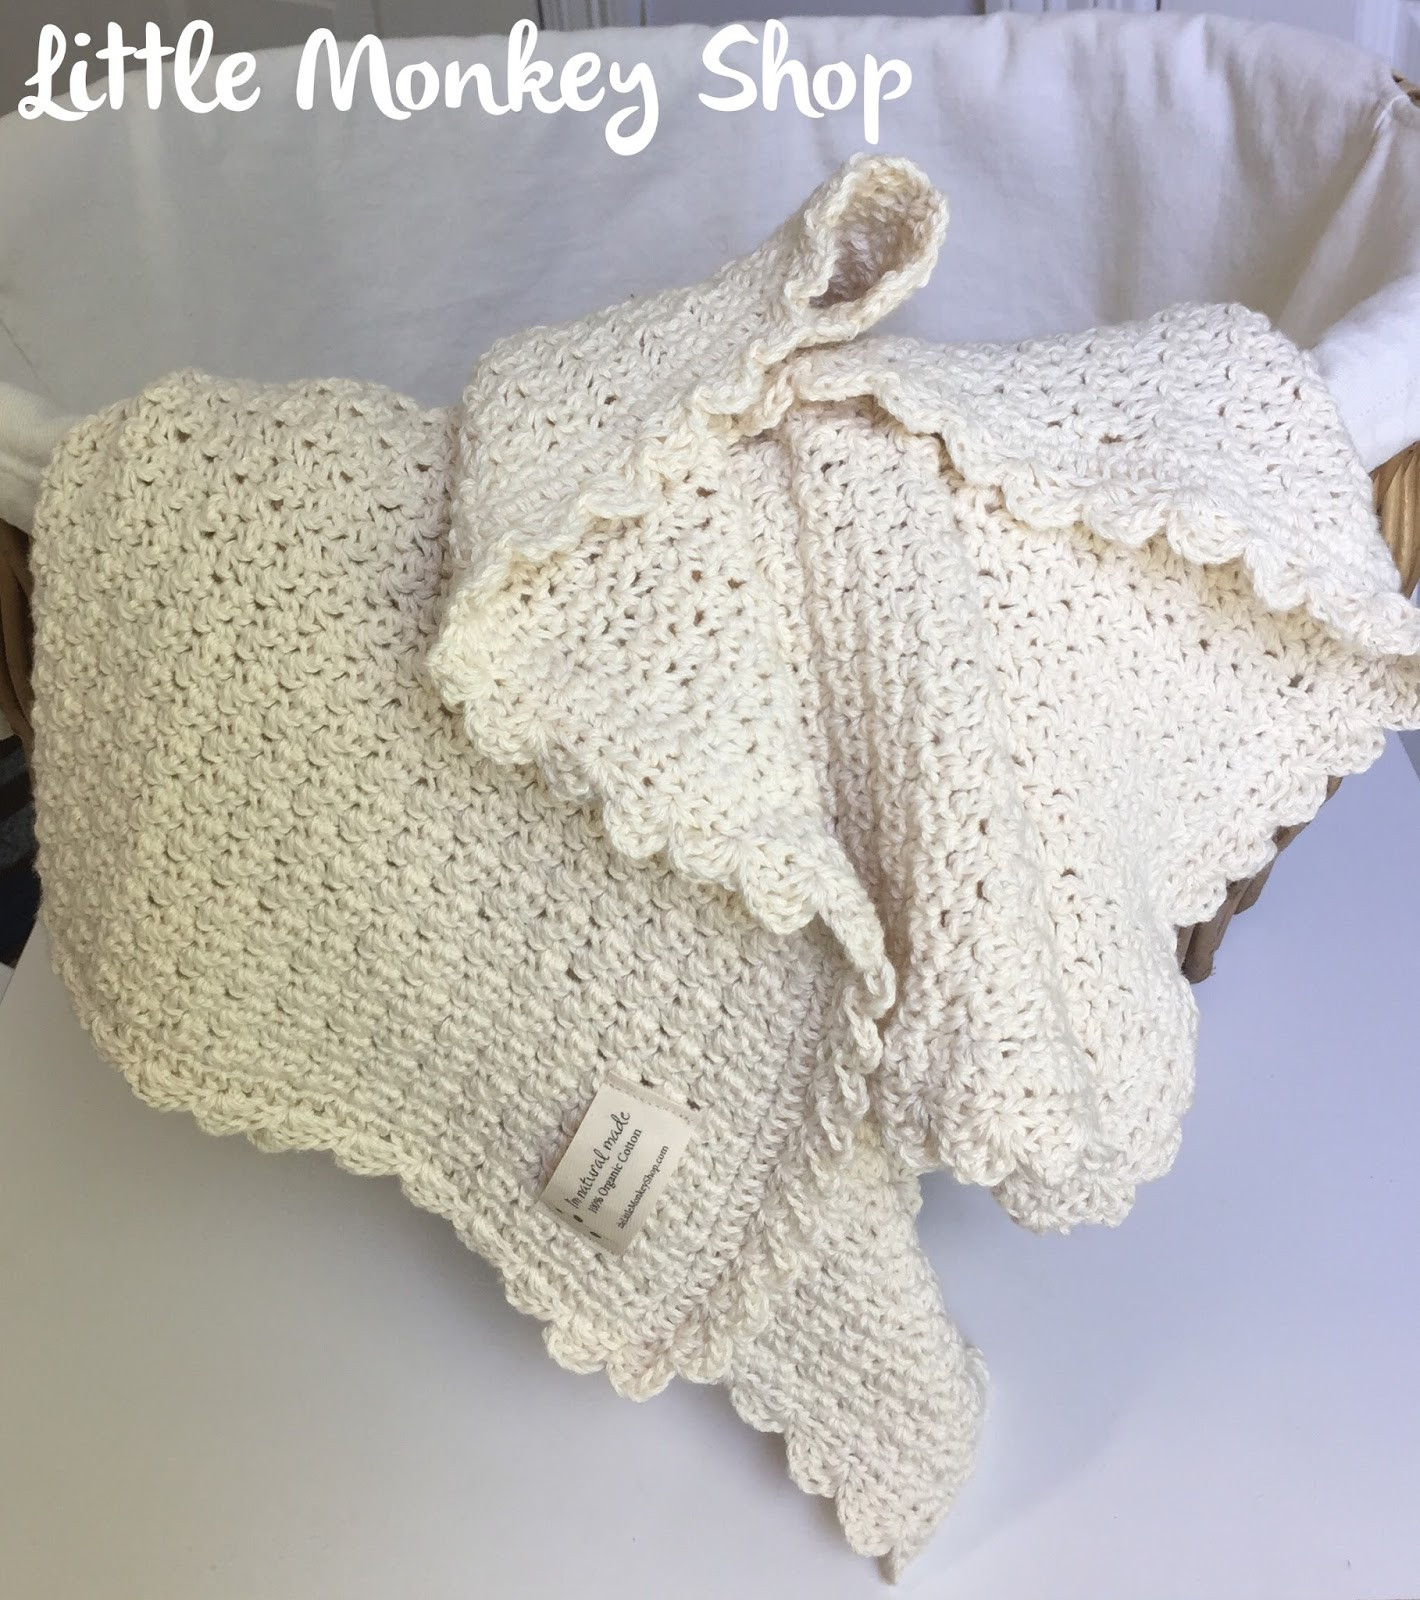 I Love This Cotton Yarn Crochet Patterns Inspirational Pure and Simple Baby Blanket A Simply Beautiful Crochet Of Delightful 43 Ideas I Love This Cotton Yarn Crochet Patterns